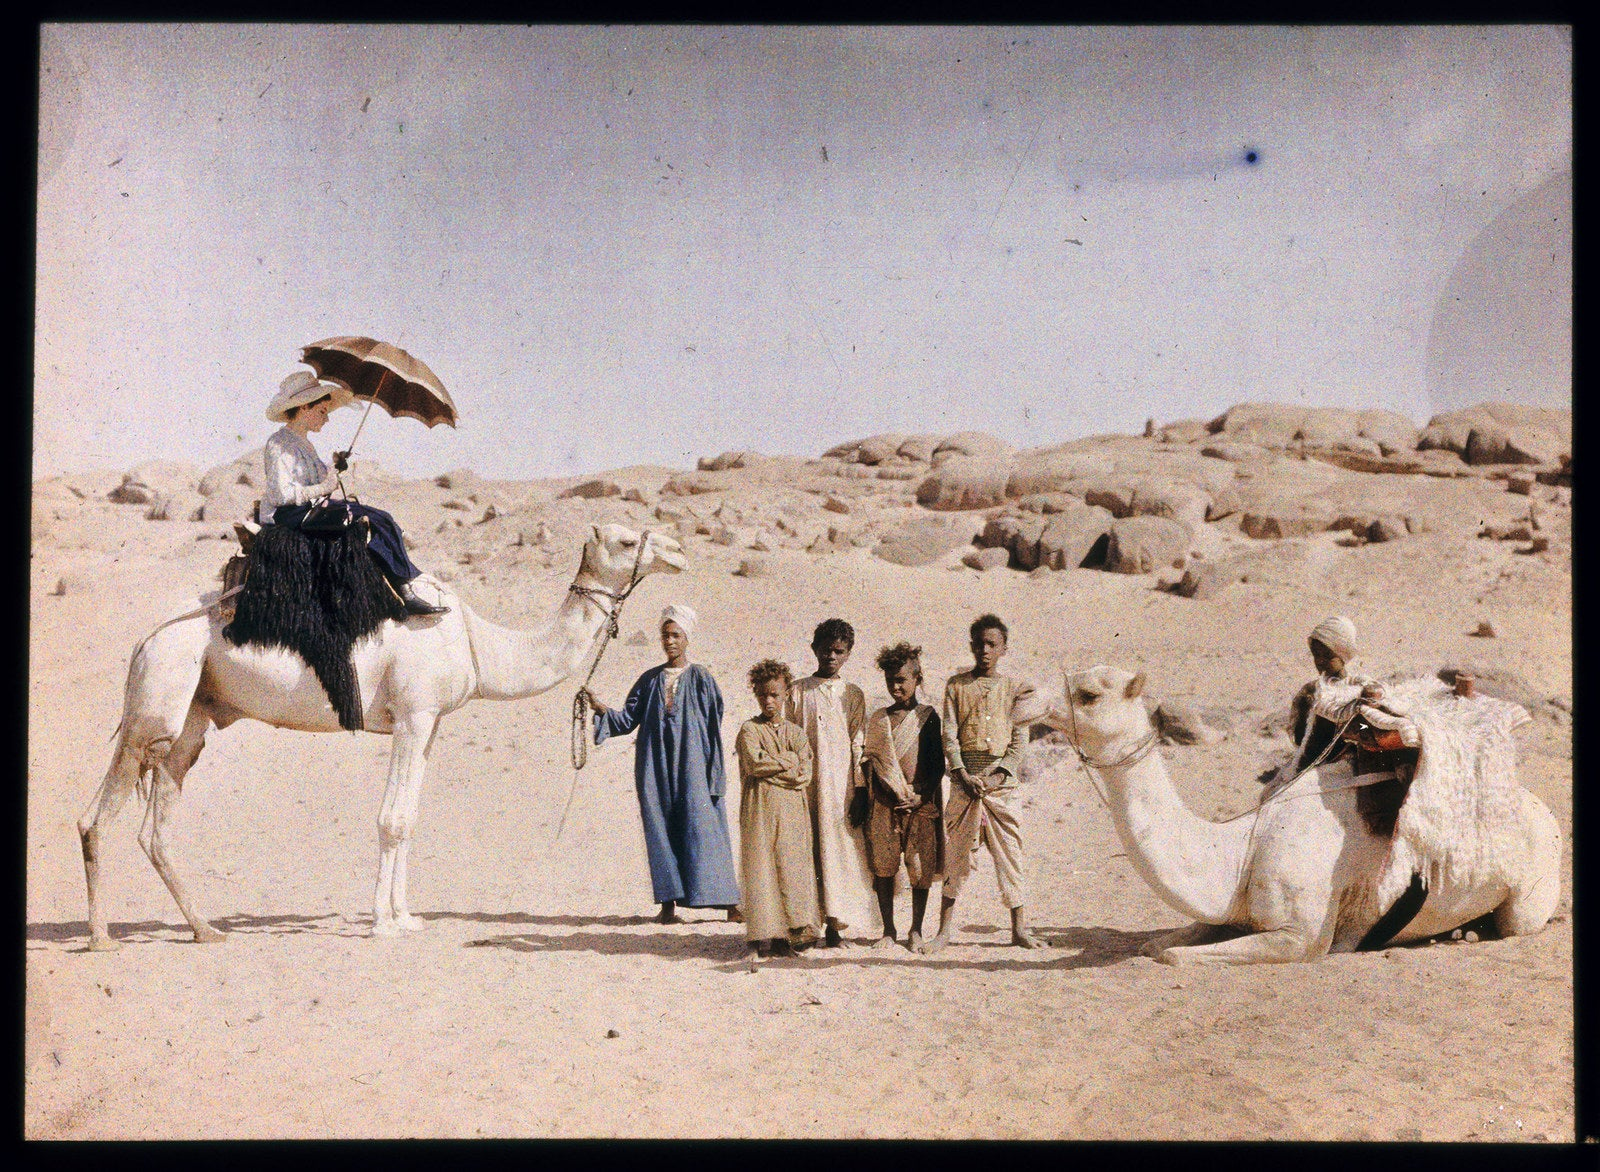 Autochrome of a scene in Egypt by Friedrich Paneth, 1913.